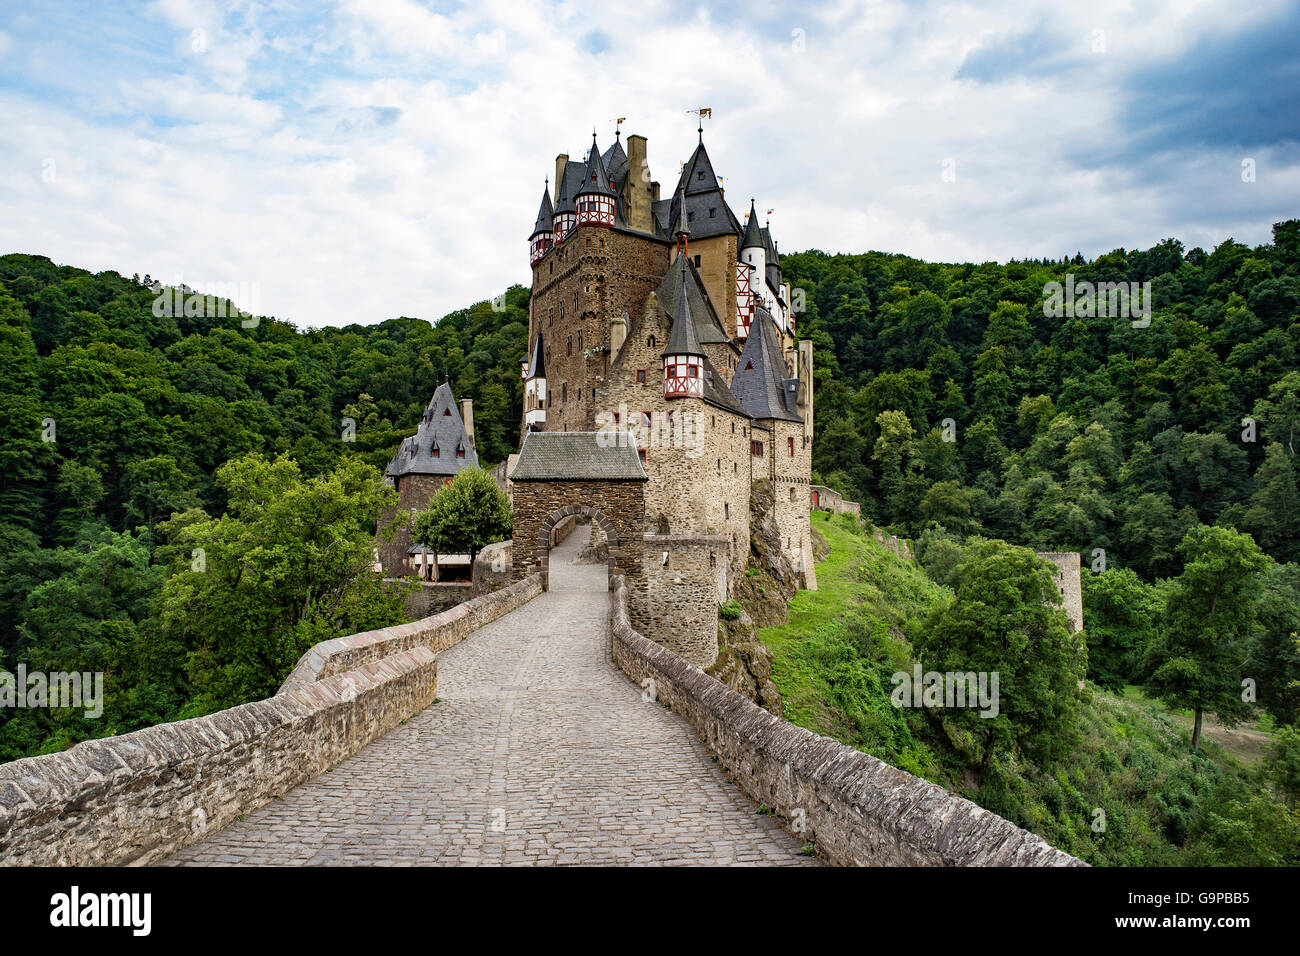 Castle Eltz Is One Of The Best Preserved Castles In Europe Located - Best castles in europe